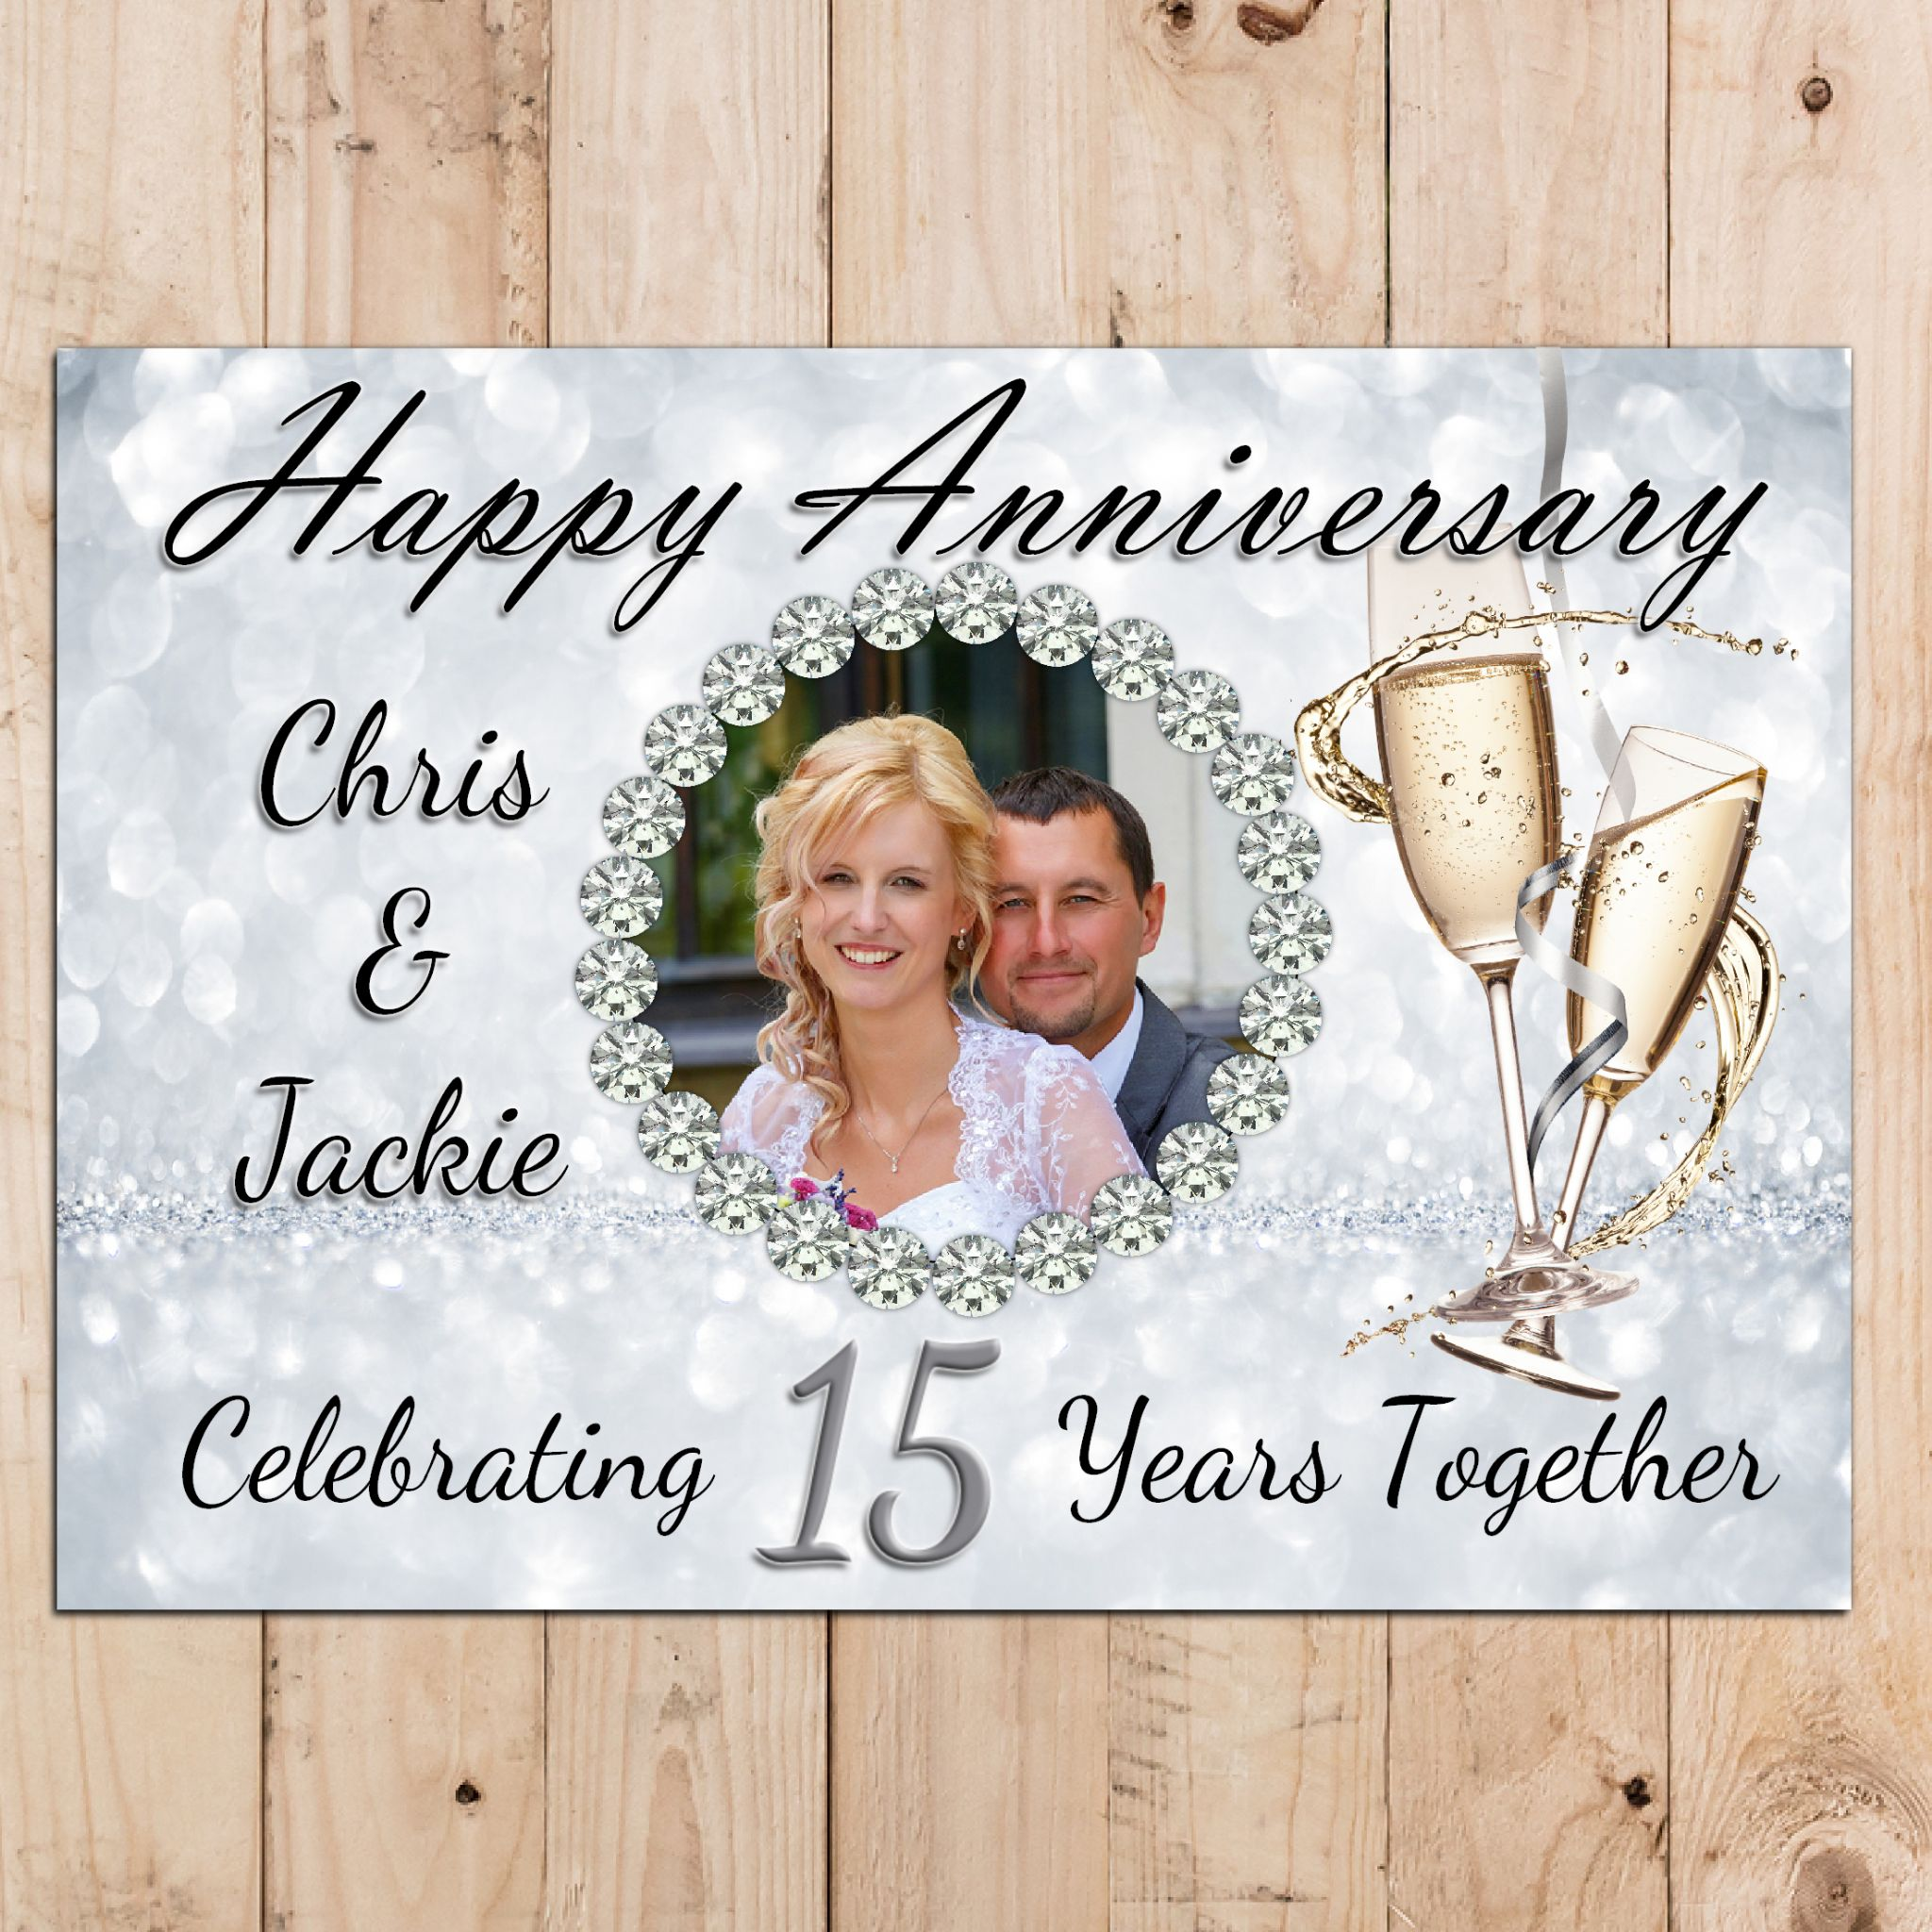 wedding anniversary banner - Boat.jeremyeaton.co